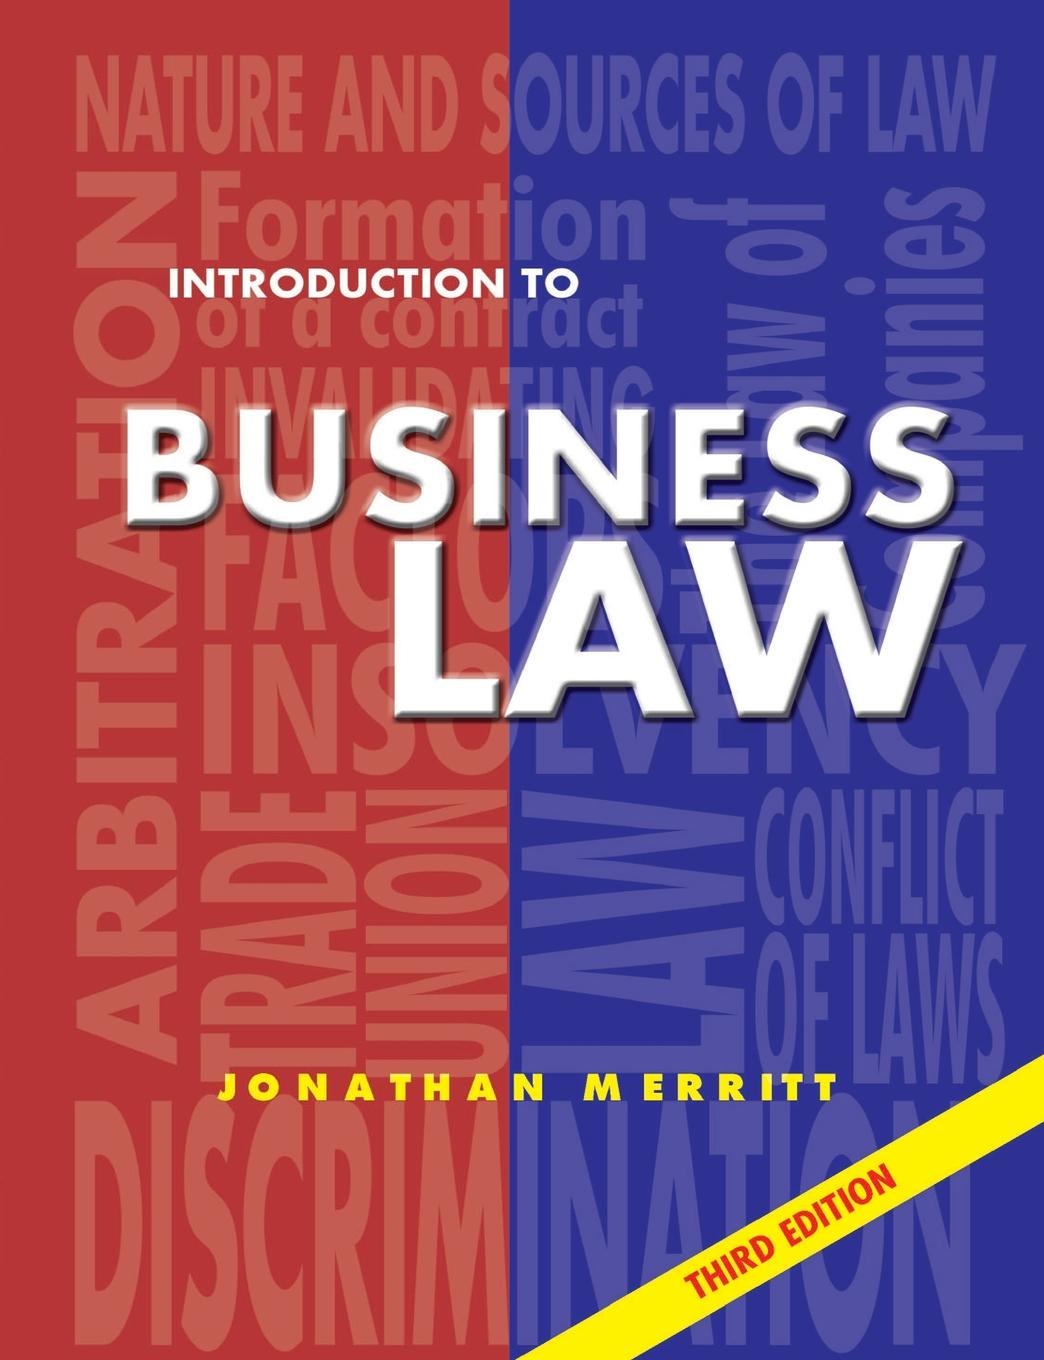 J. G. Merritt, Jonathan Merritt Introduction to Business Law 3rd Ed. Third Edition clifford chane russian business law compendium 3